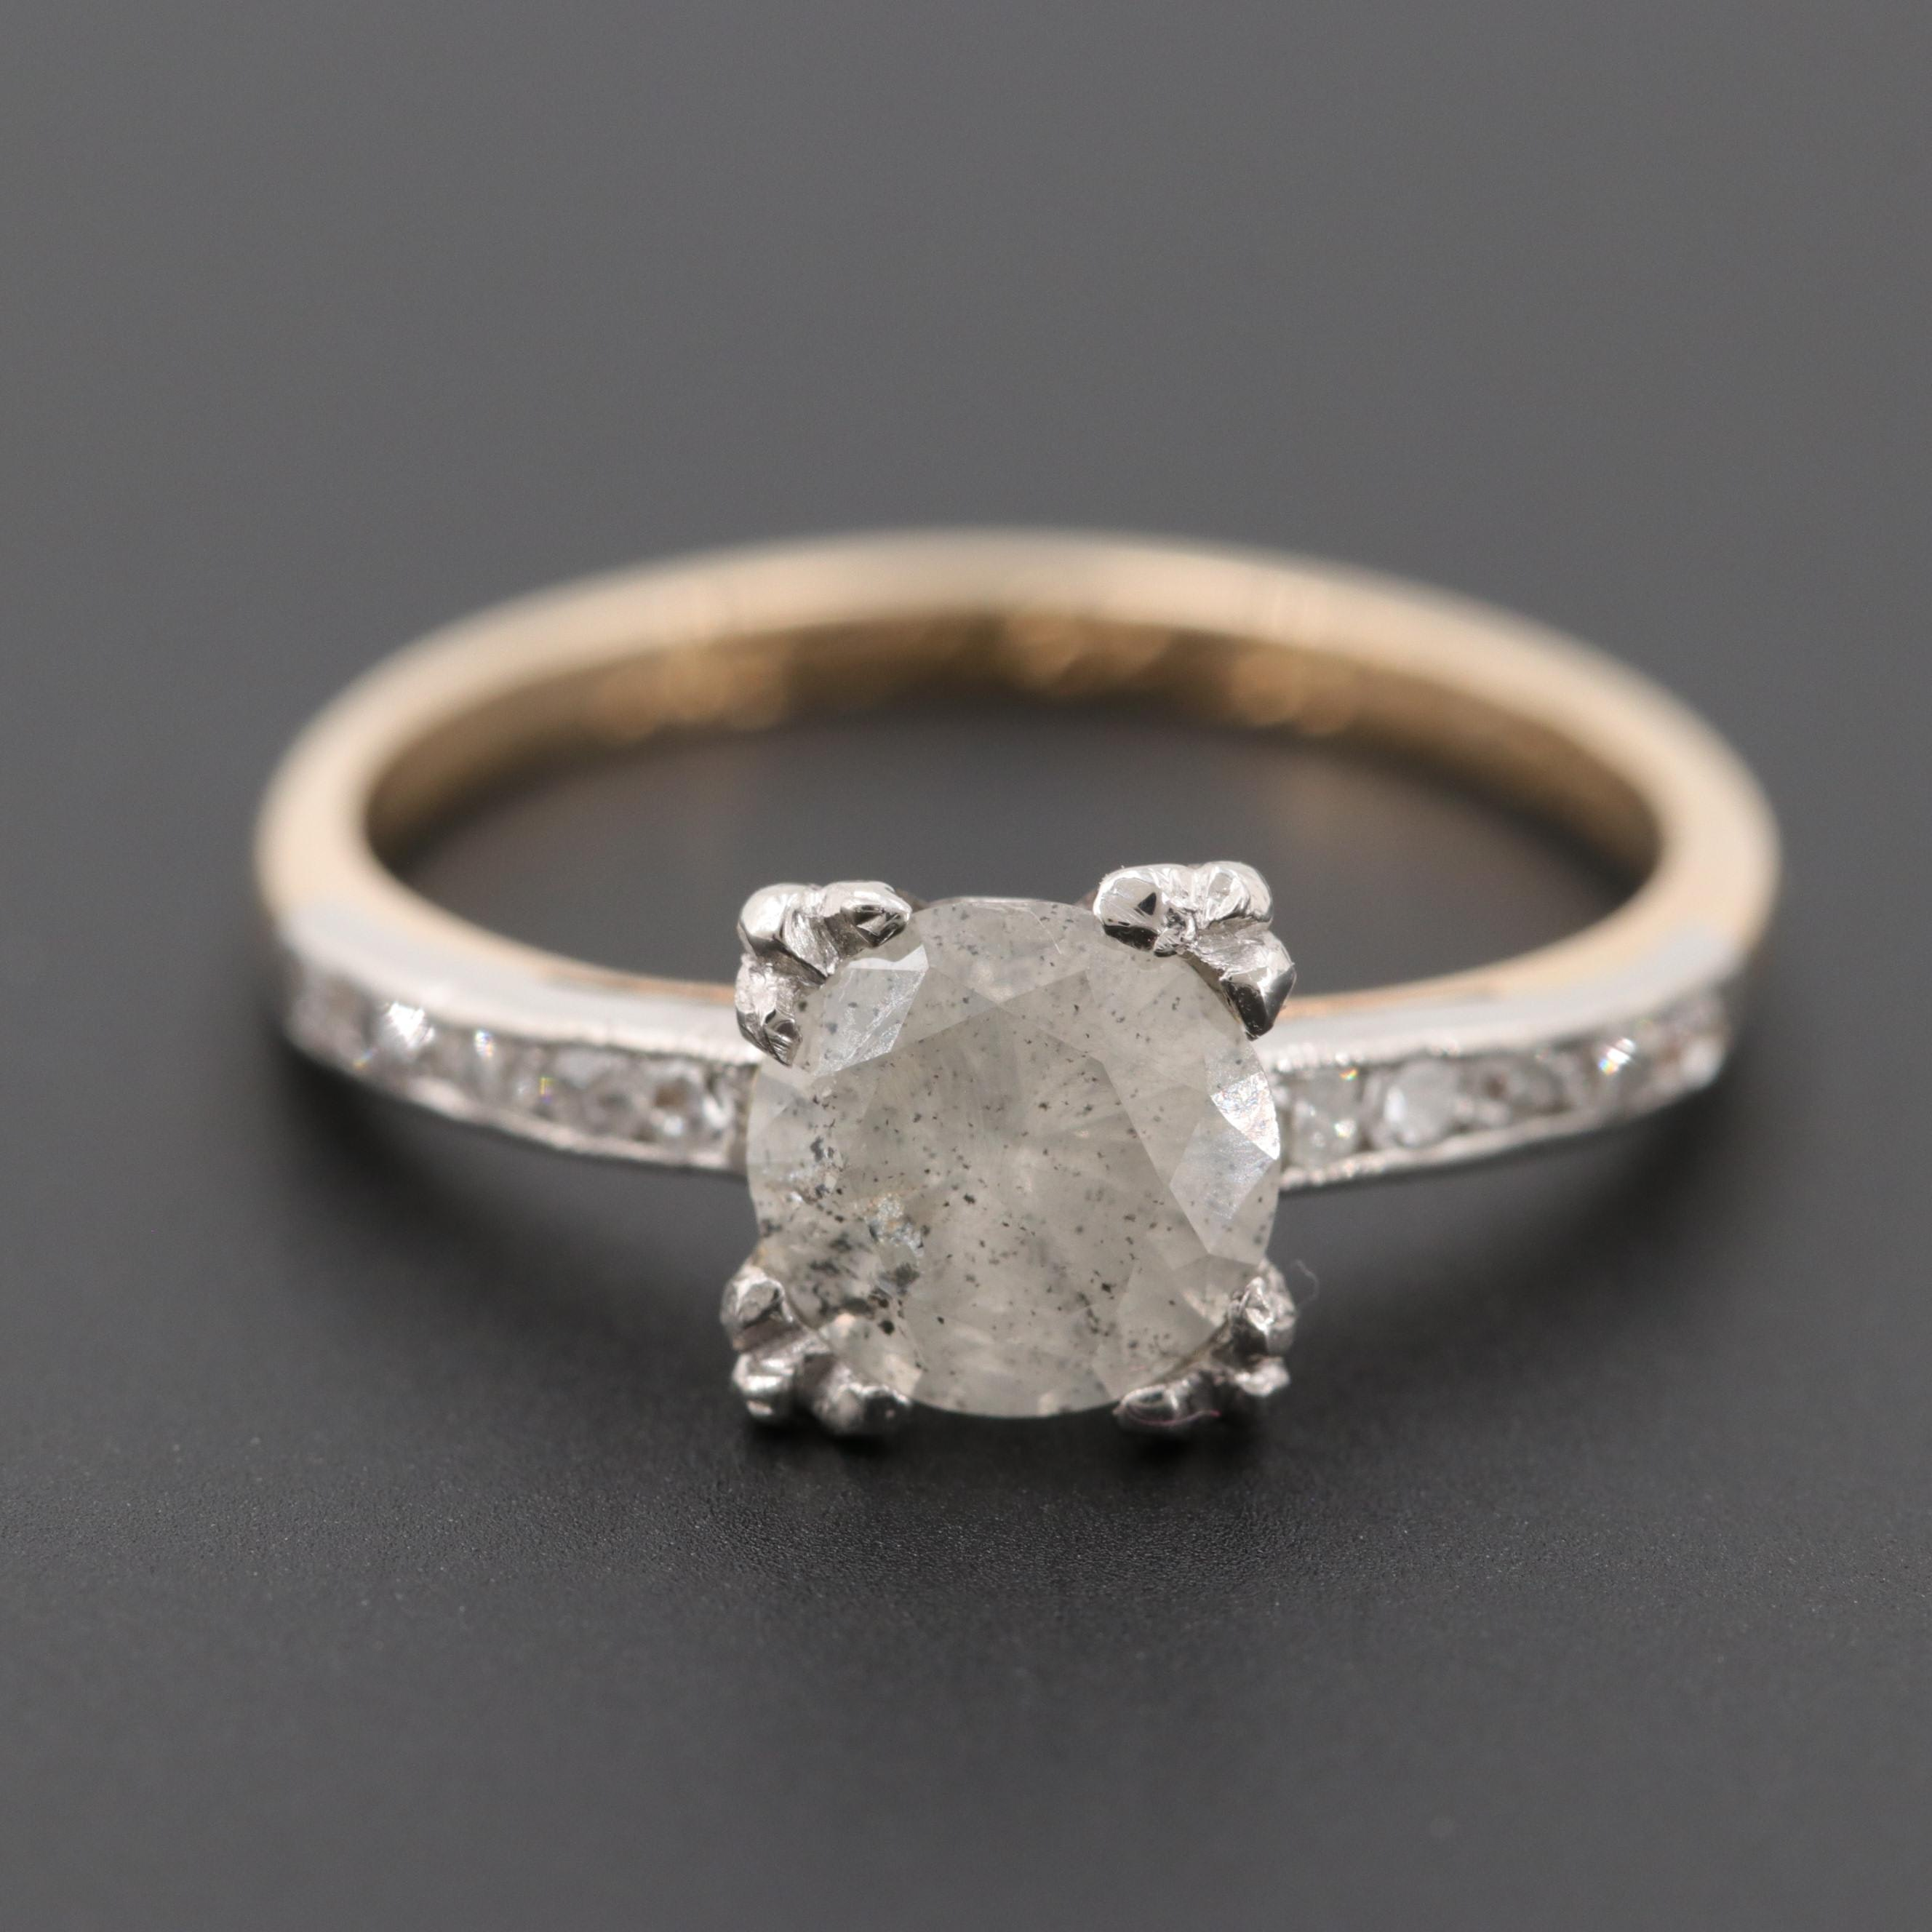 Circa 1940 14K Yellow Gold Diamond Ring with Platinum Accent